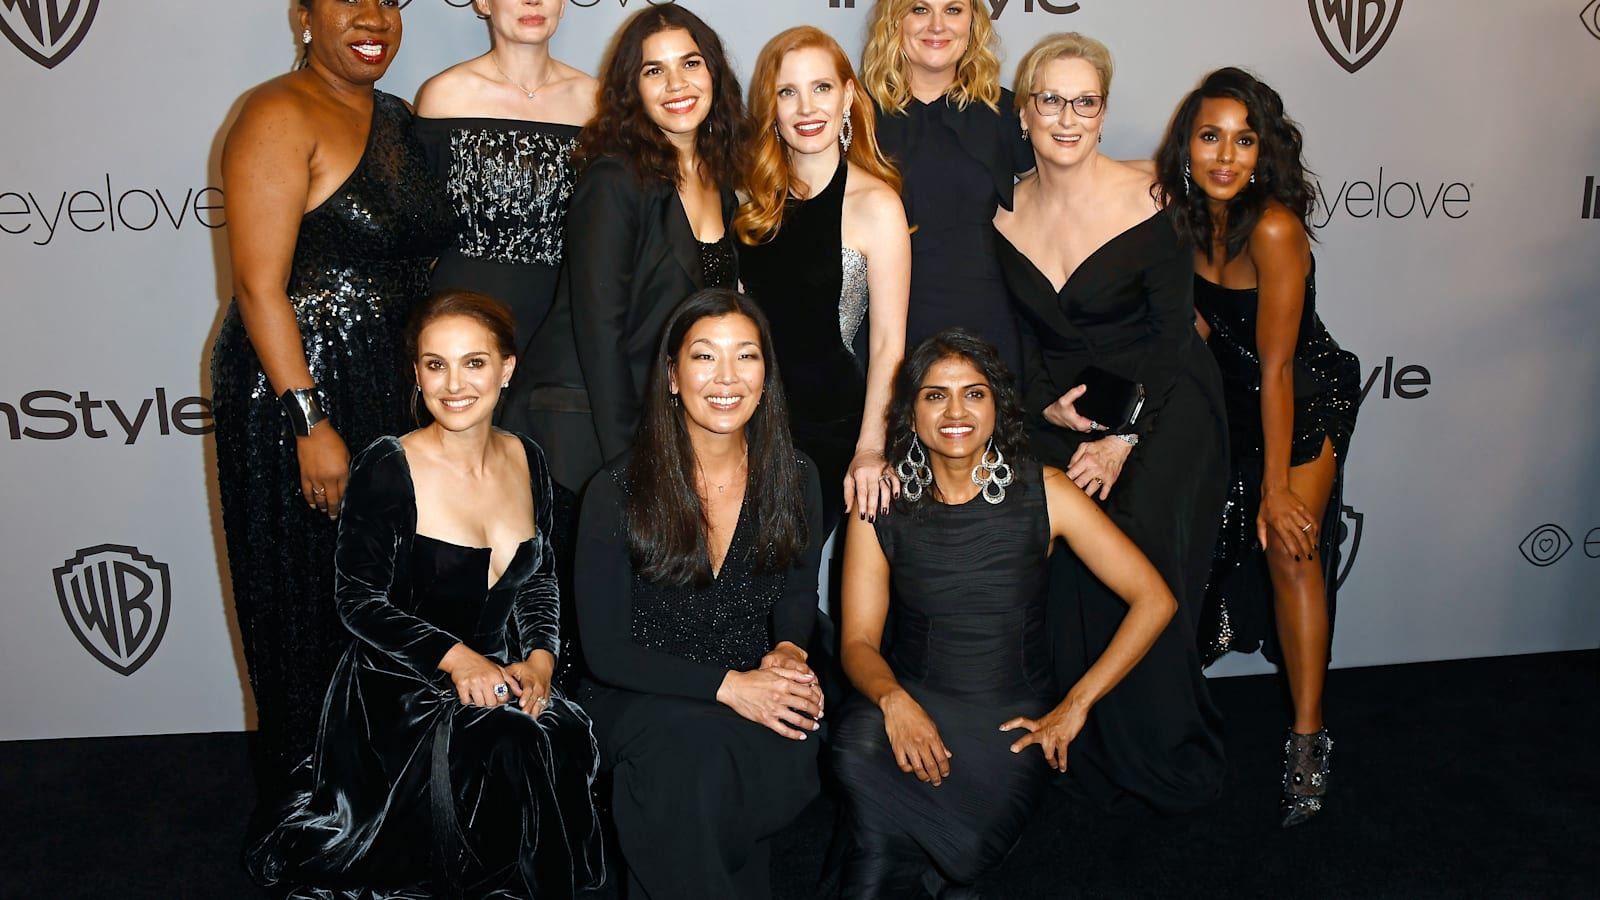 Meet the Women Fighting Sexual Harassment With Time's Up